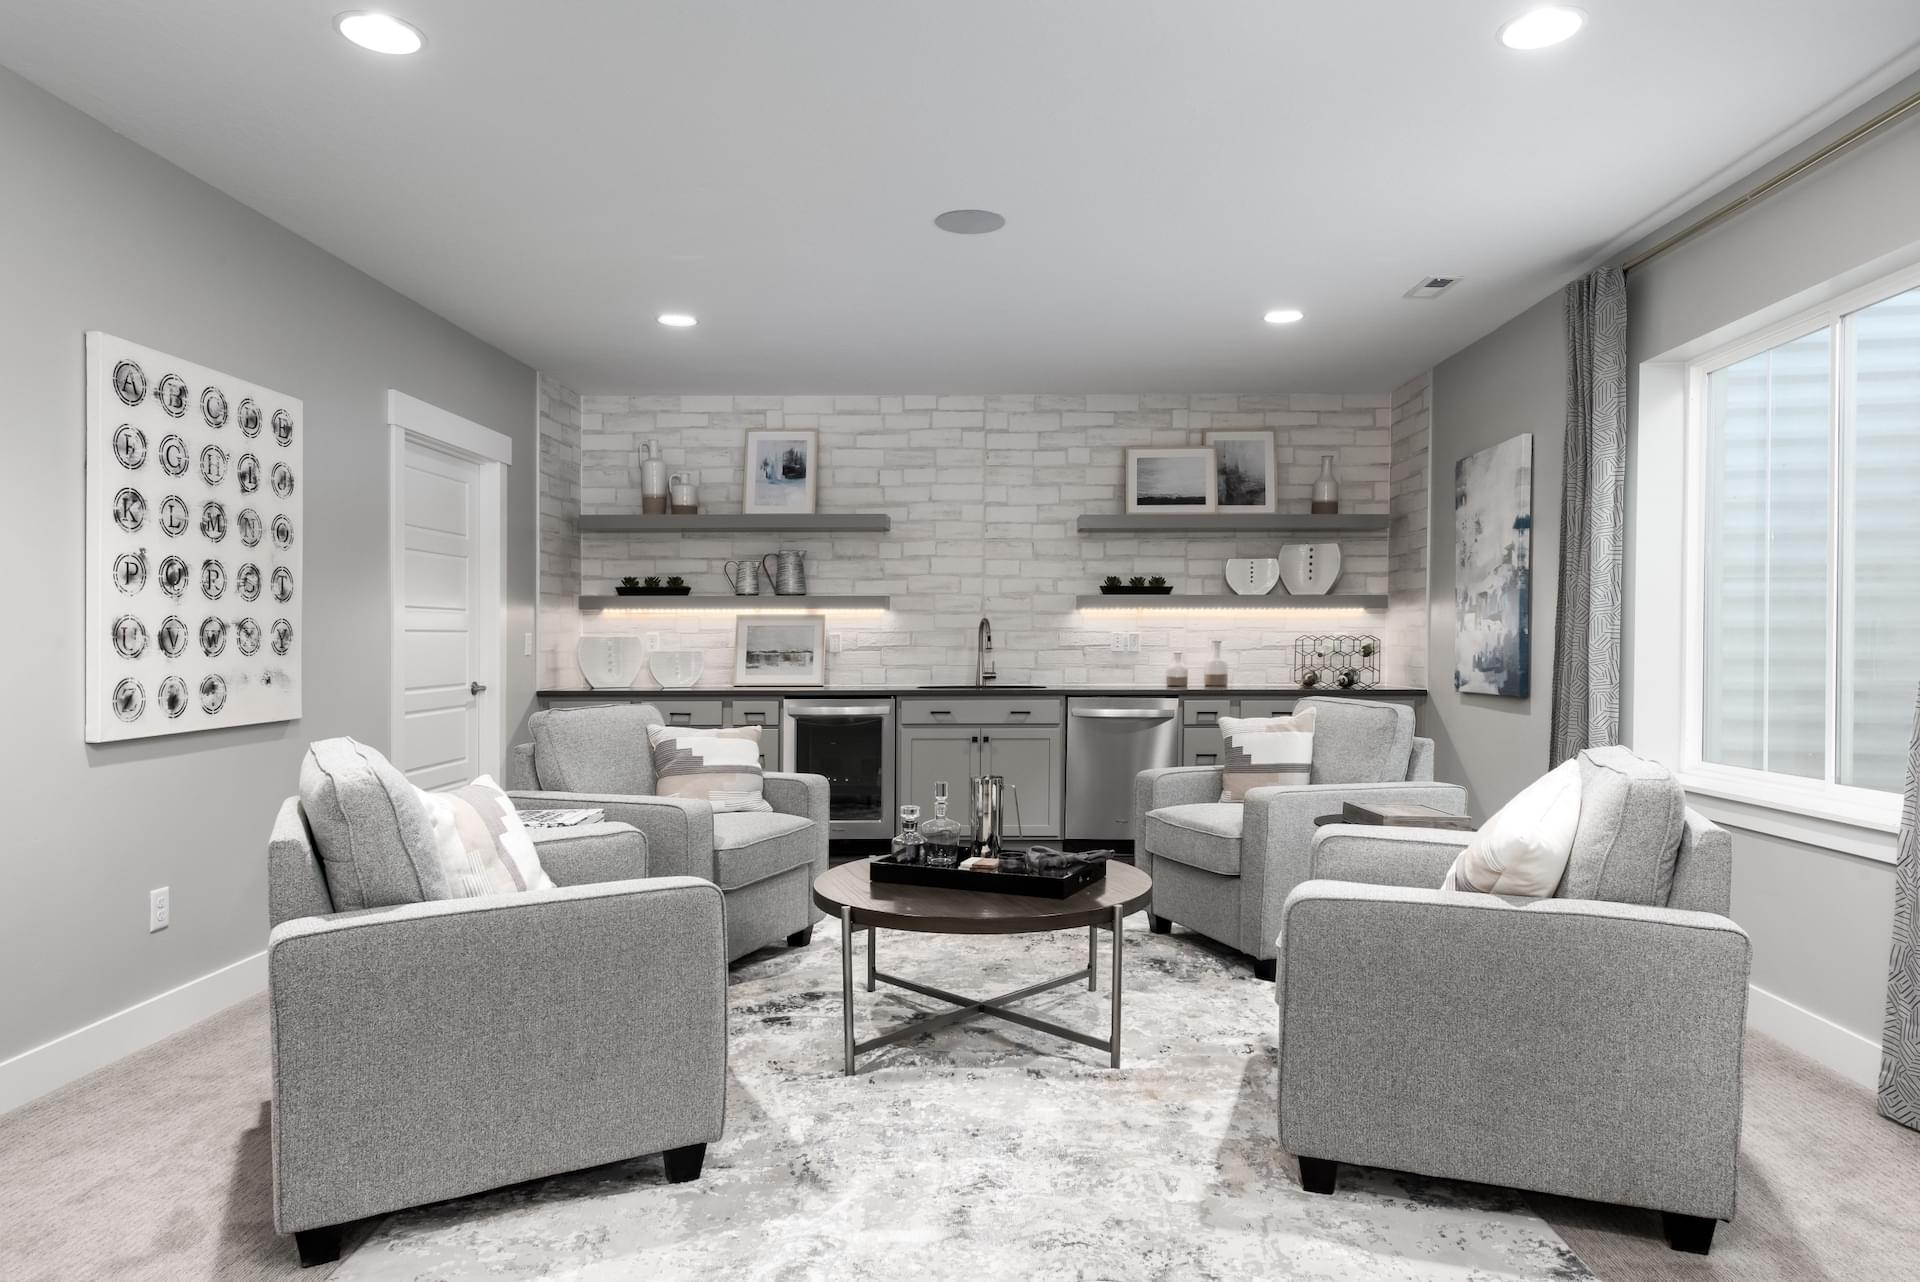 New Home Basements Photos of Fieldstone Homes